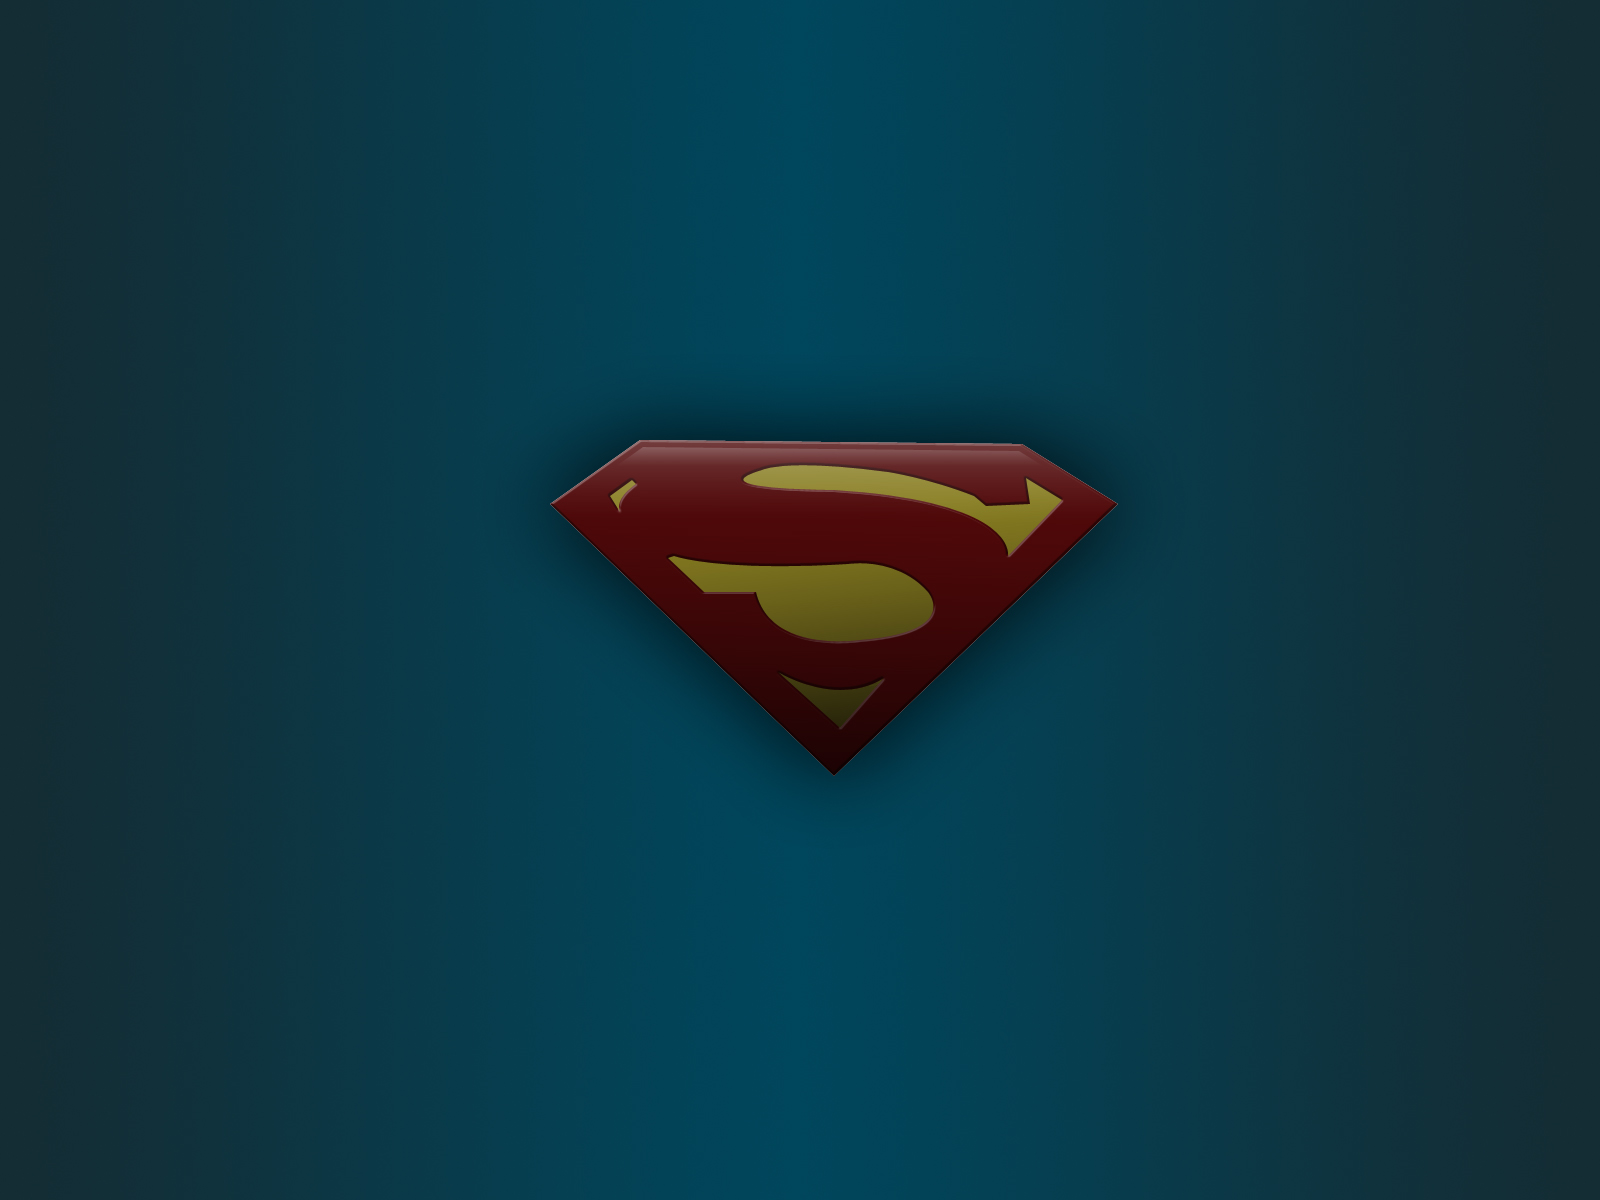 Superman Logo Wallpaper Wallpupcom 1600x1200